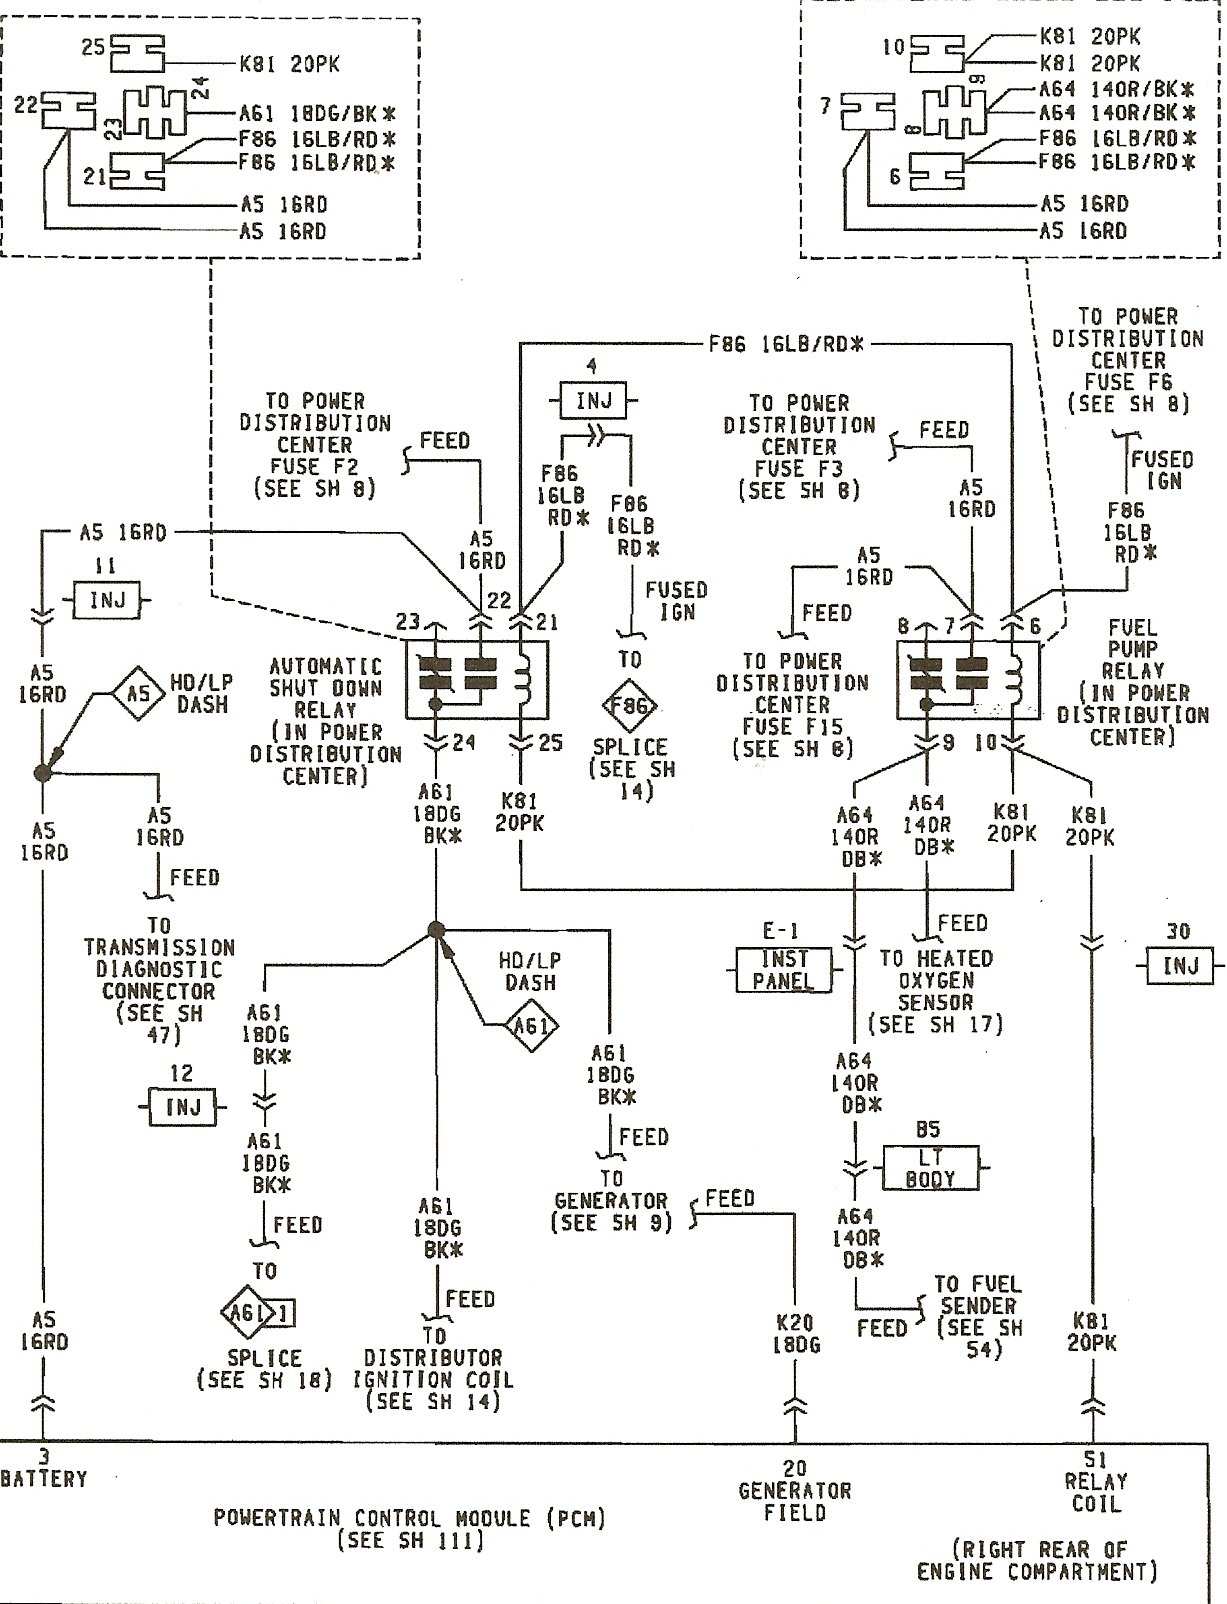 Wire Diagram on Jeep Wrangler Uconnect Wiring Diagram